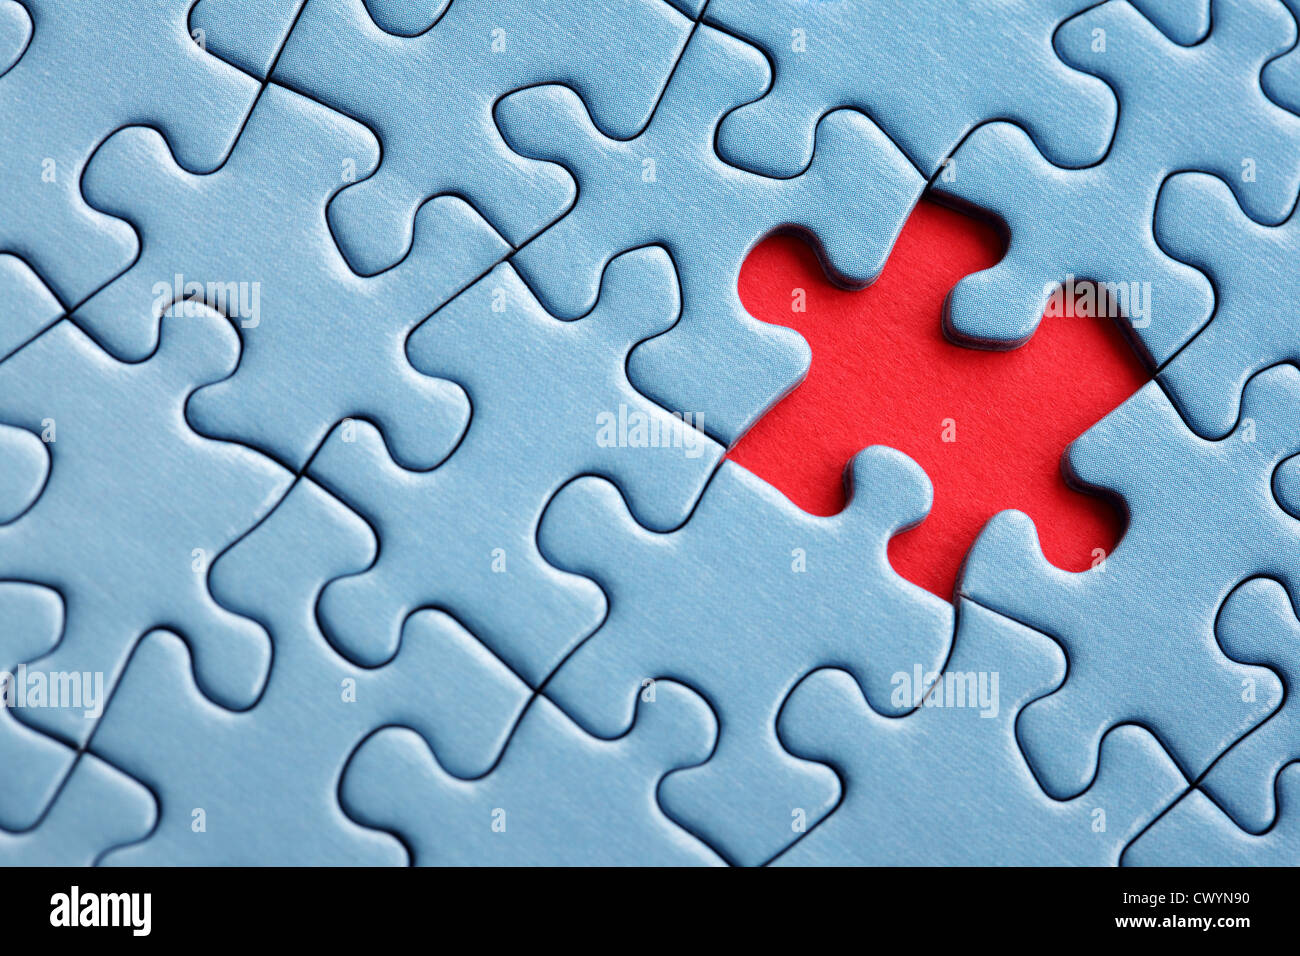 Last piece of the puzzle - Stock Image